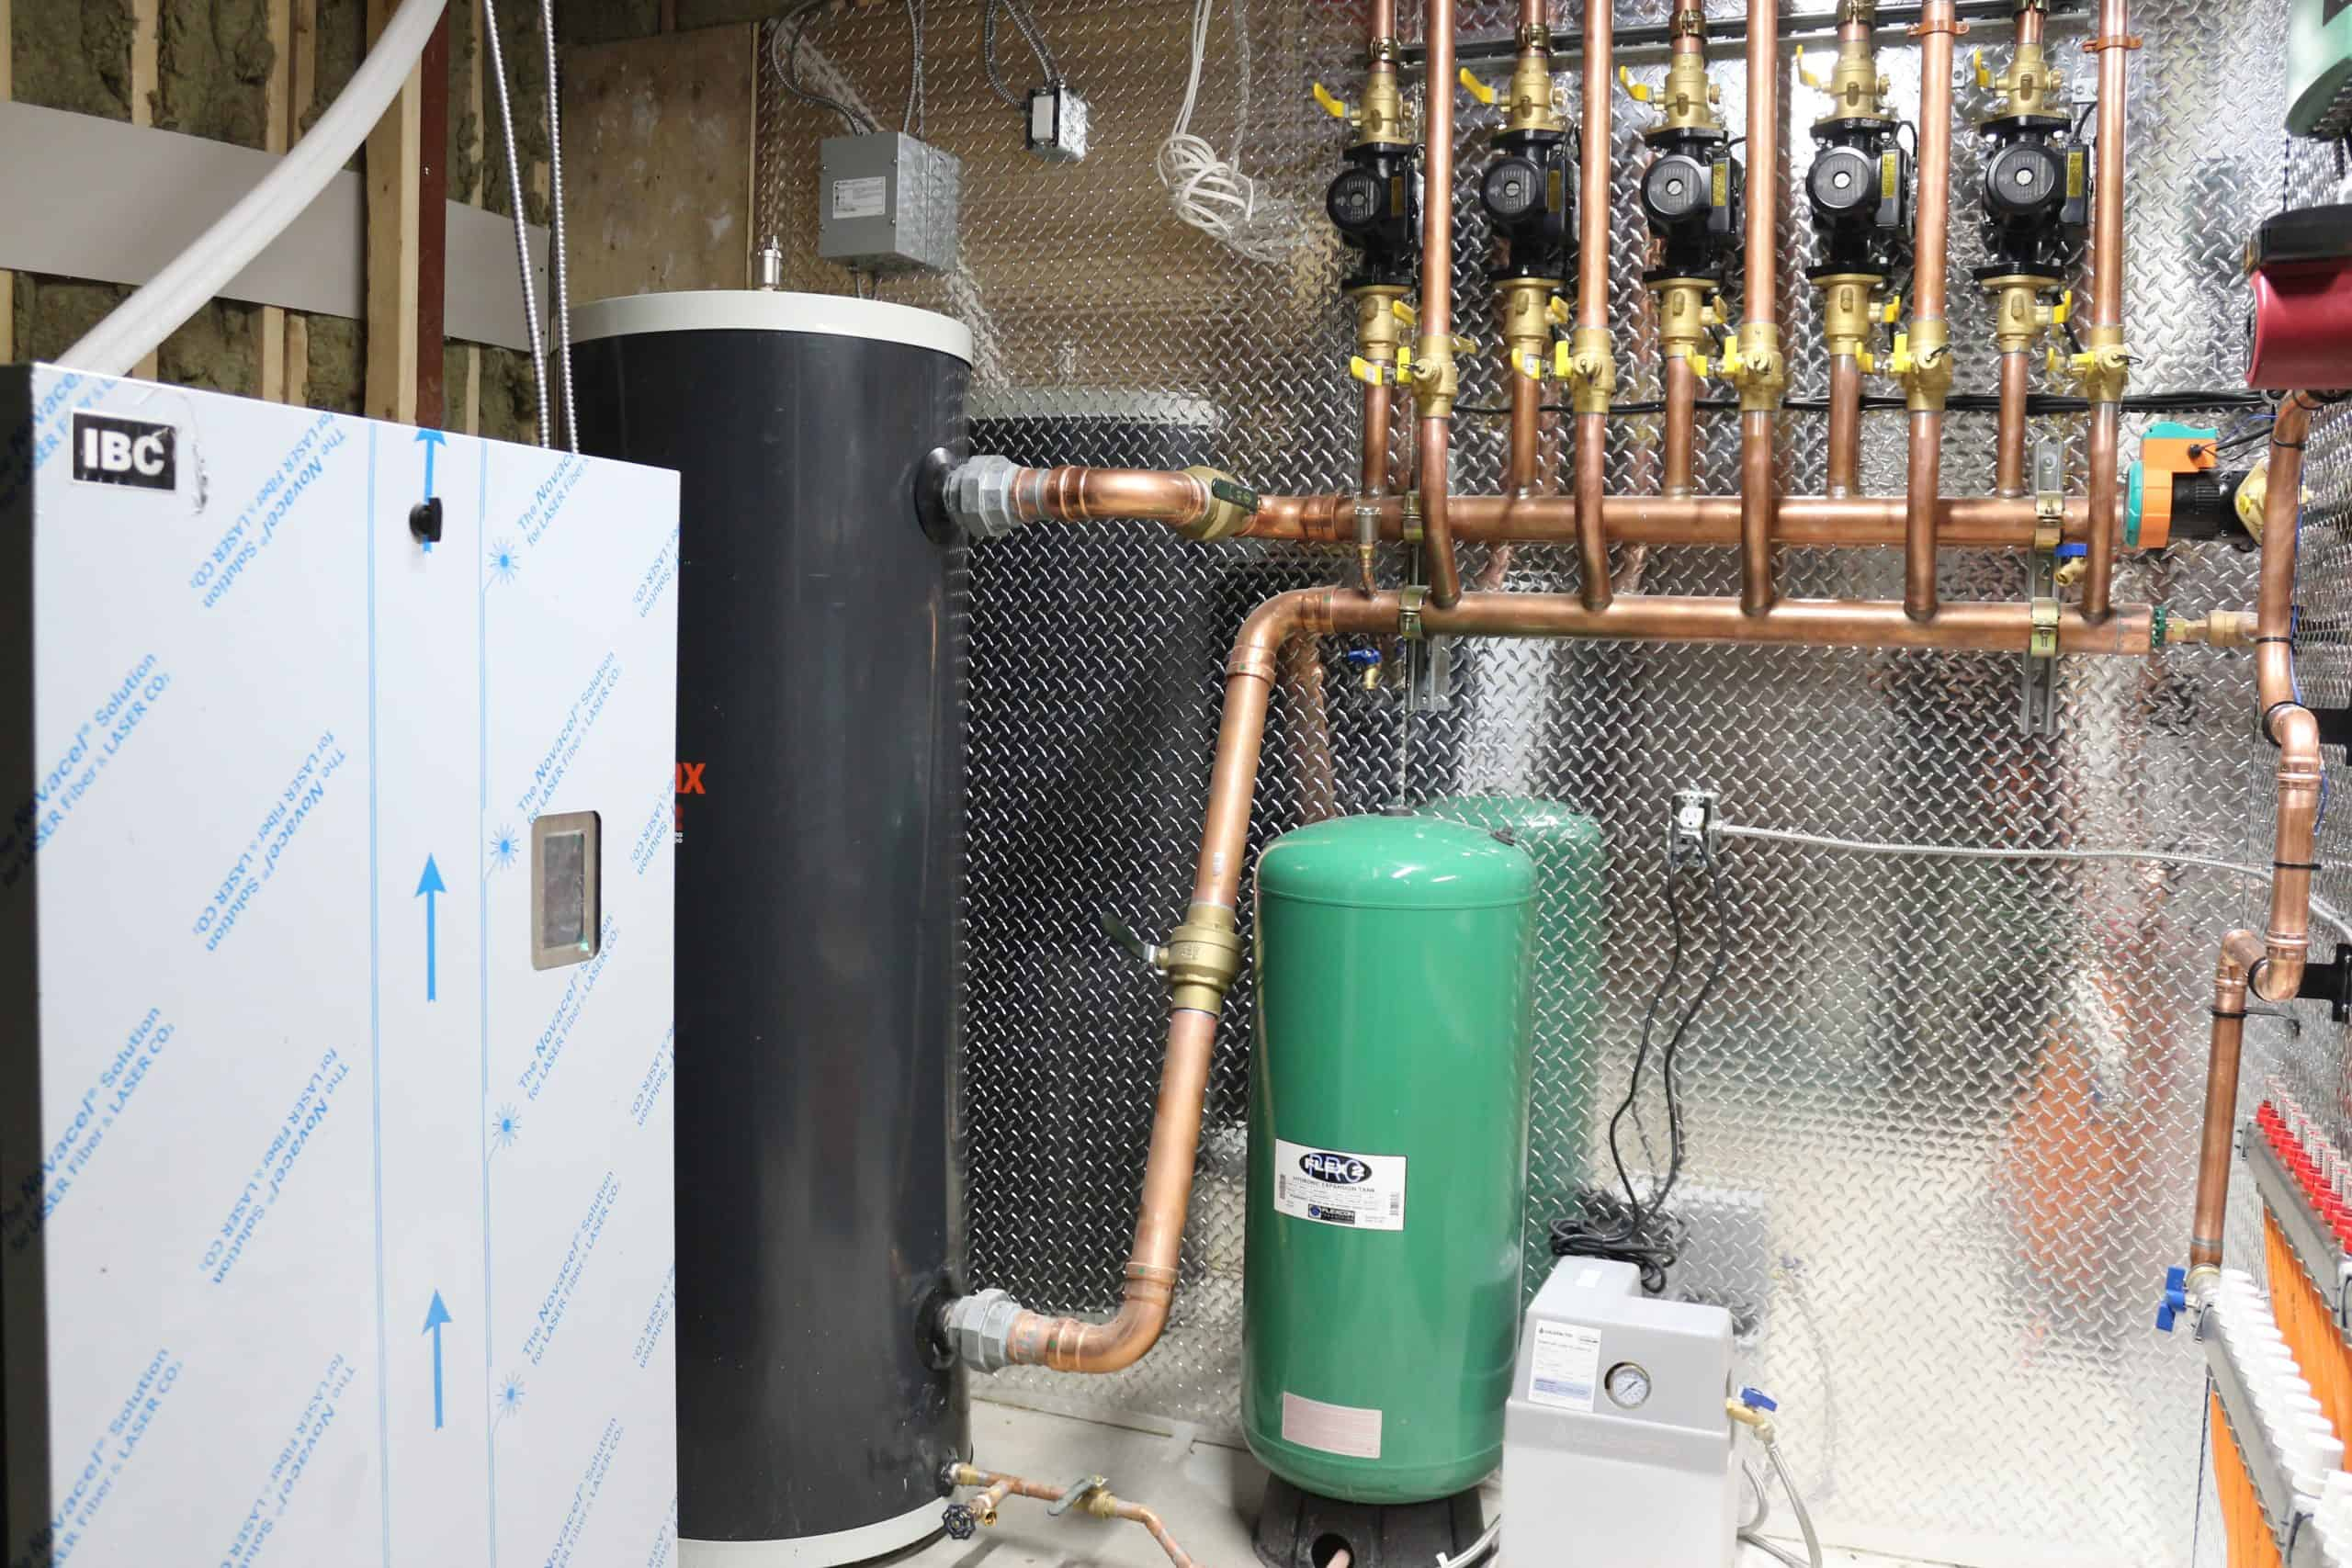 Boiler, buffer and expansion tanks